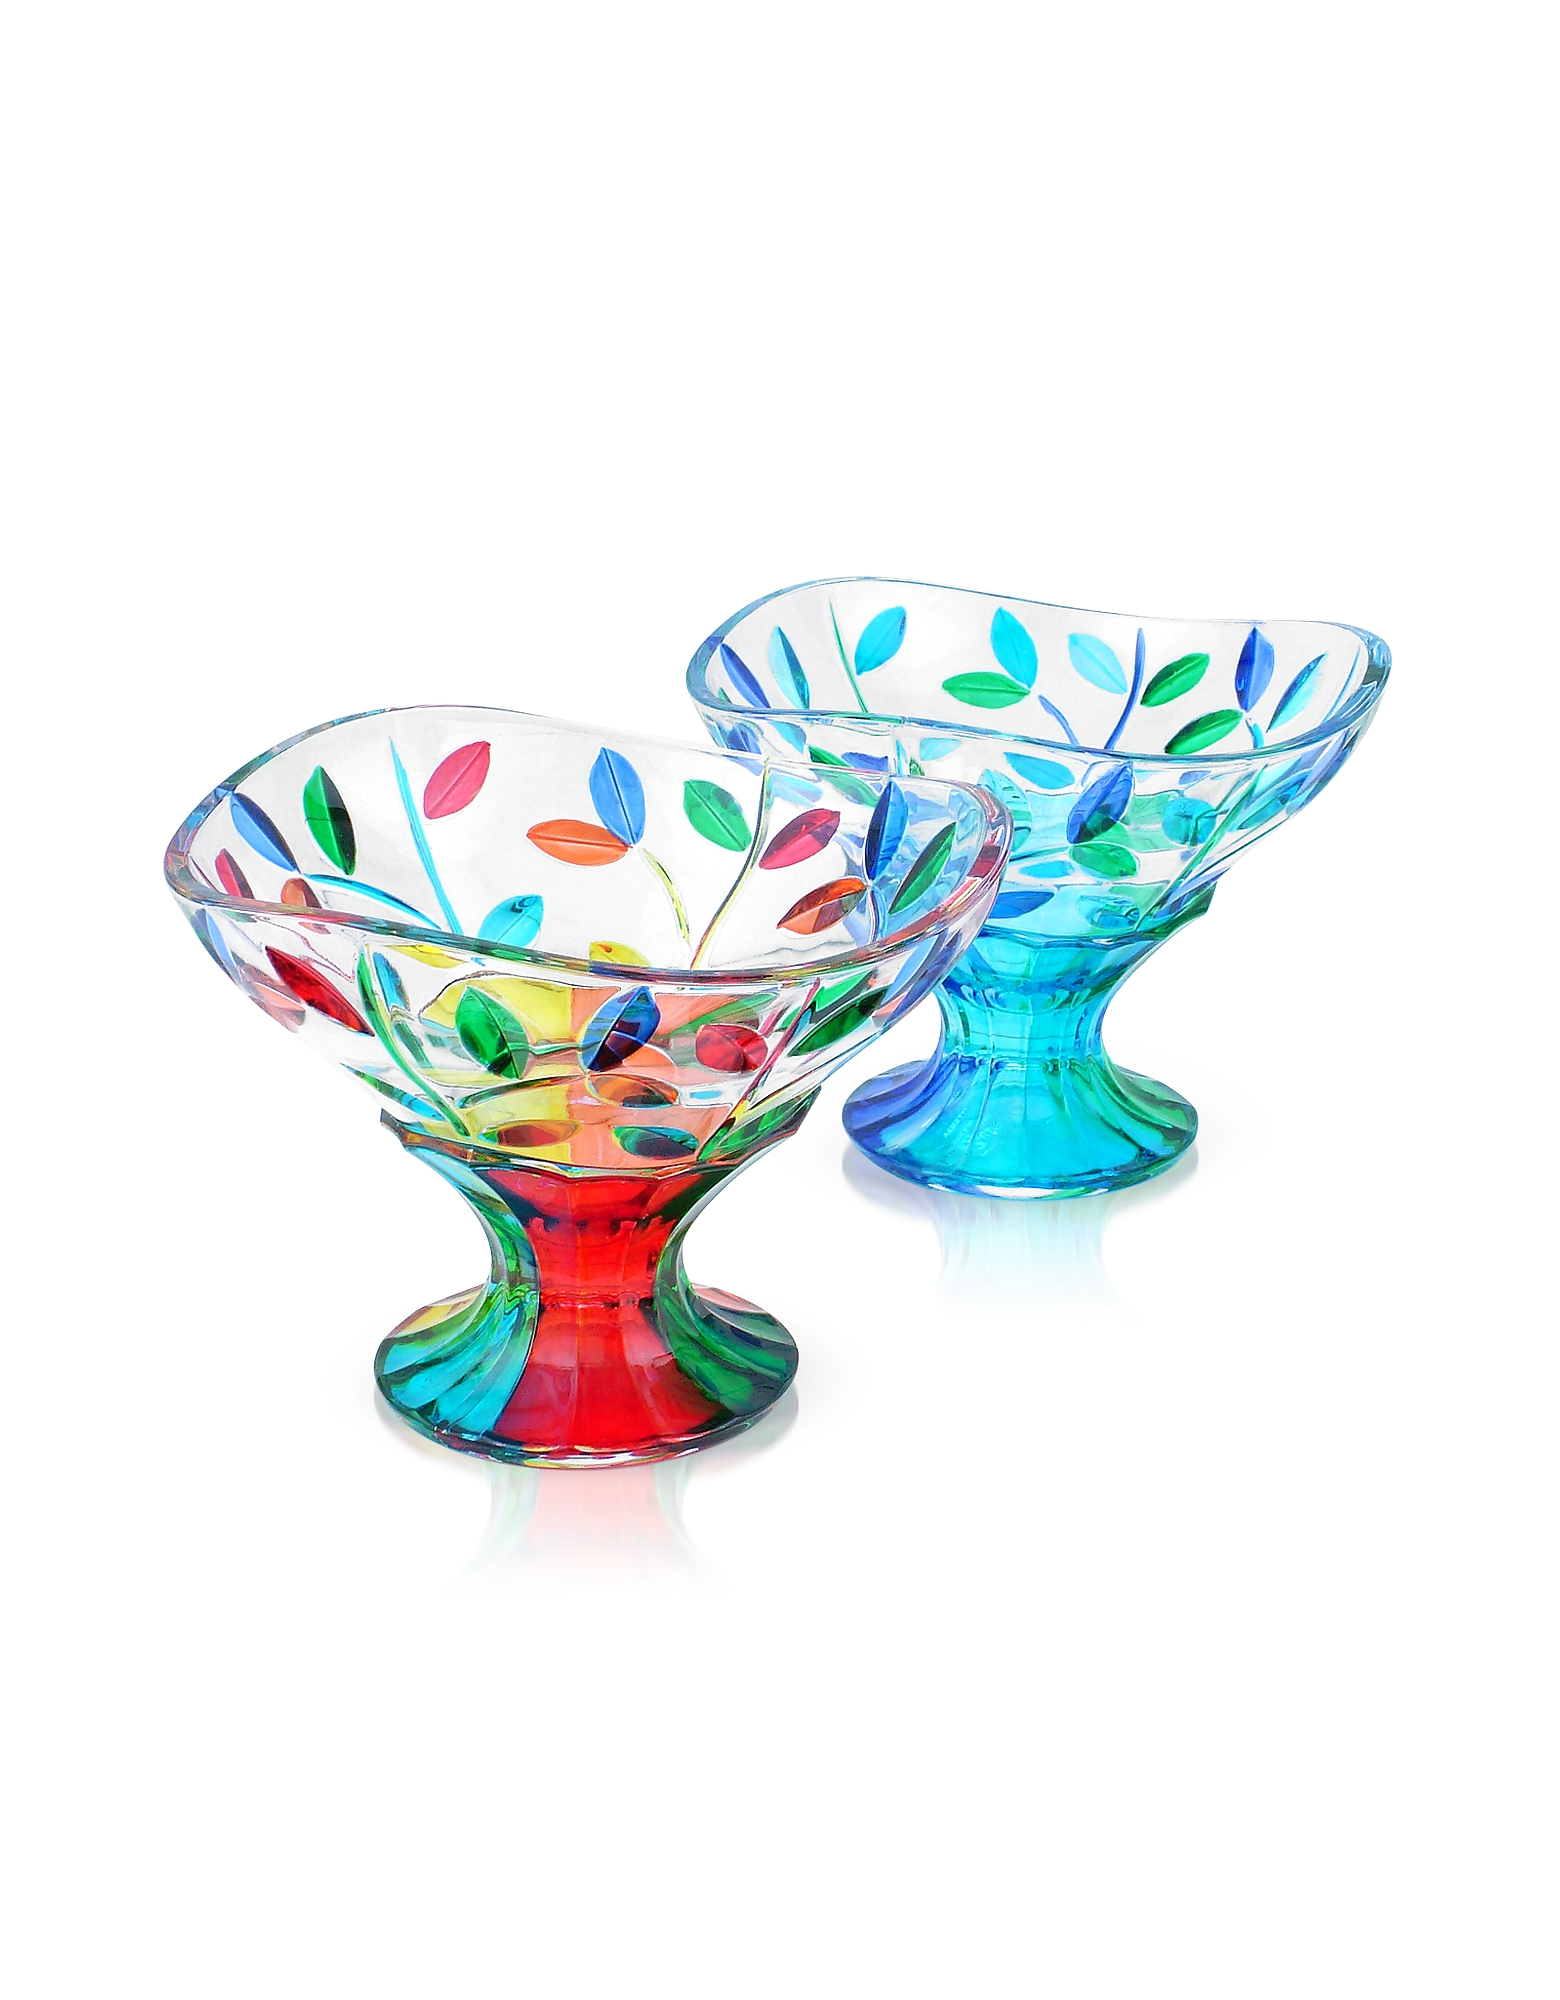 Due Zeta Designer Murano Accents, San Marco - Hand Decorated Murano Glass Dessert Bowl